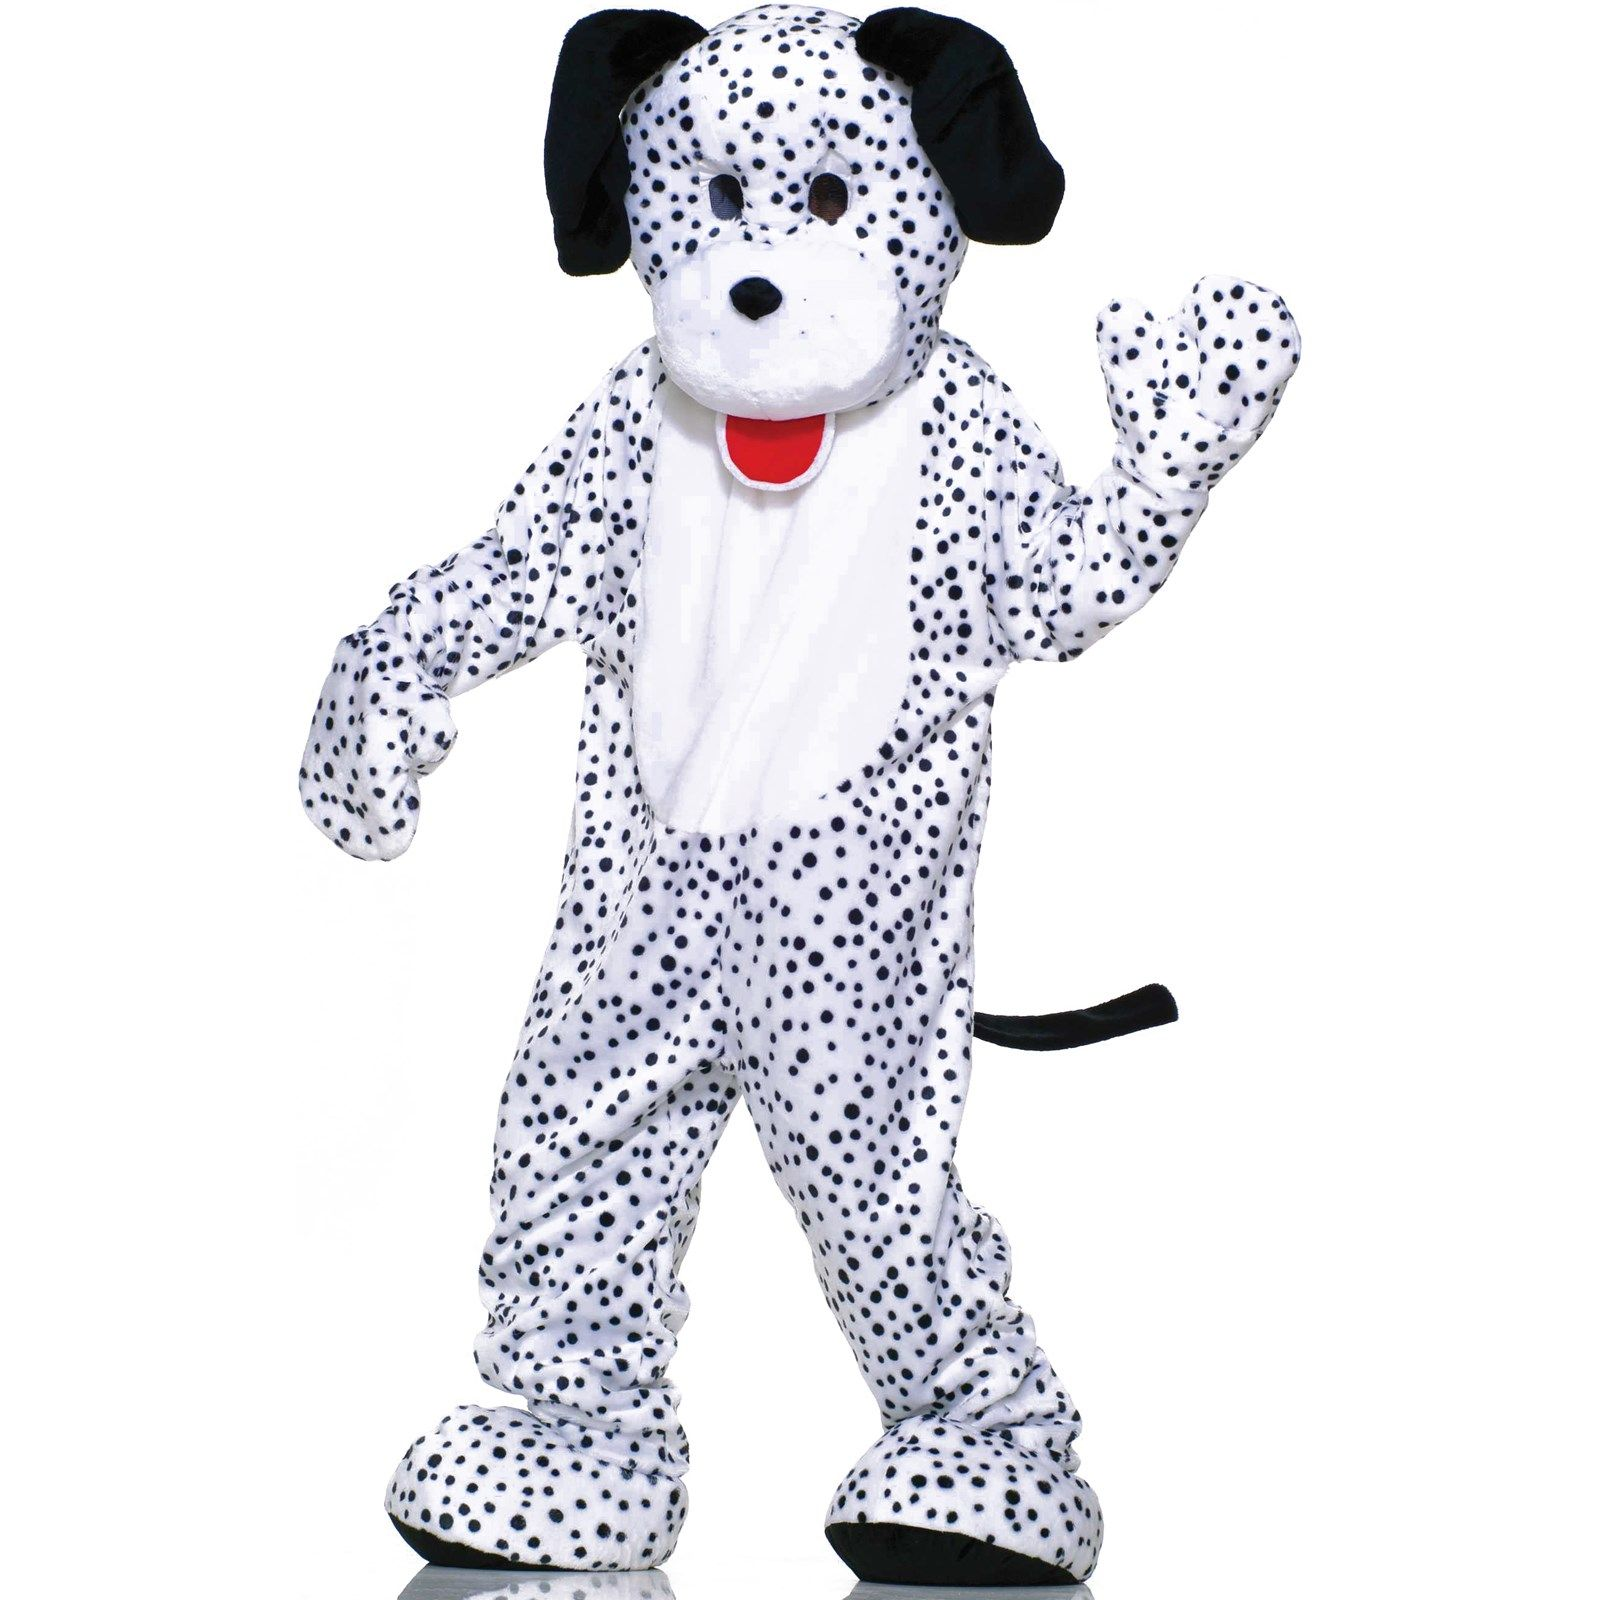 Menâ s Dalmatian Mascot Costume Size One Size Fits Most